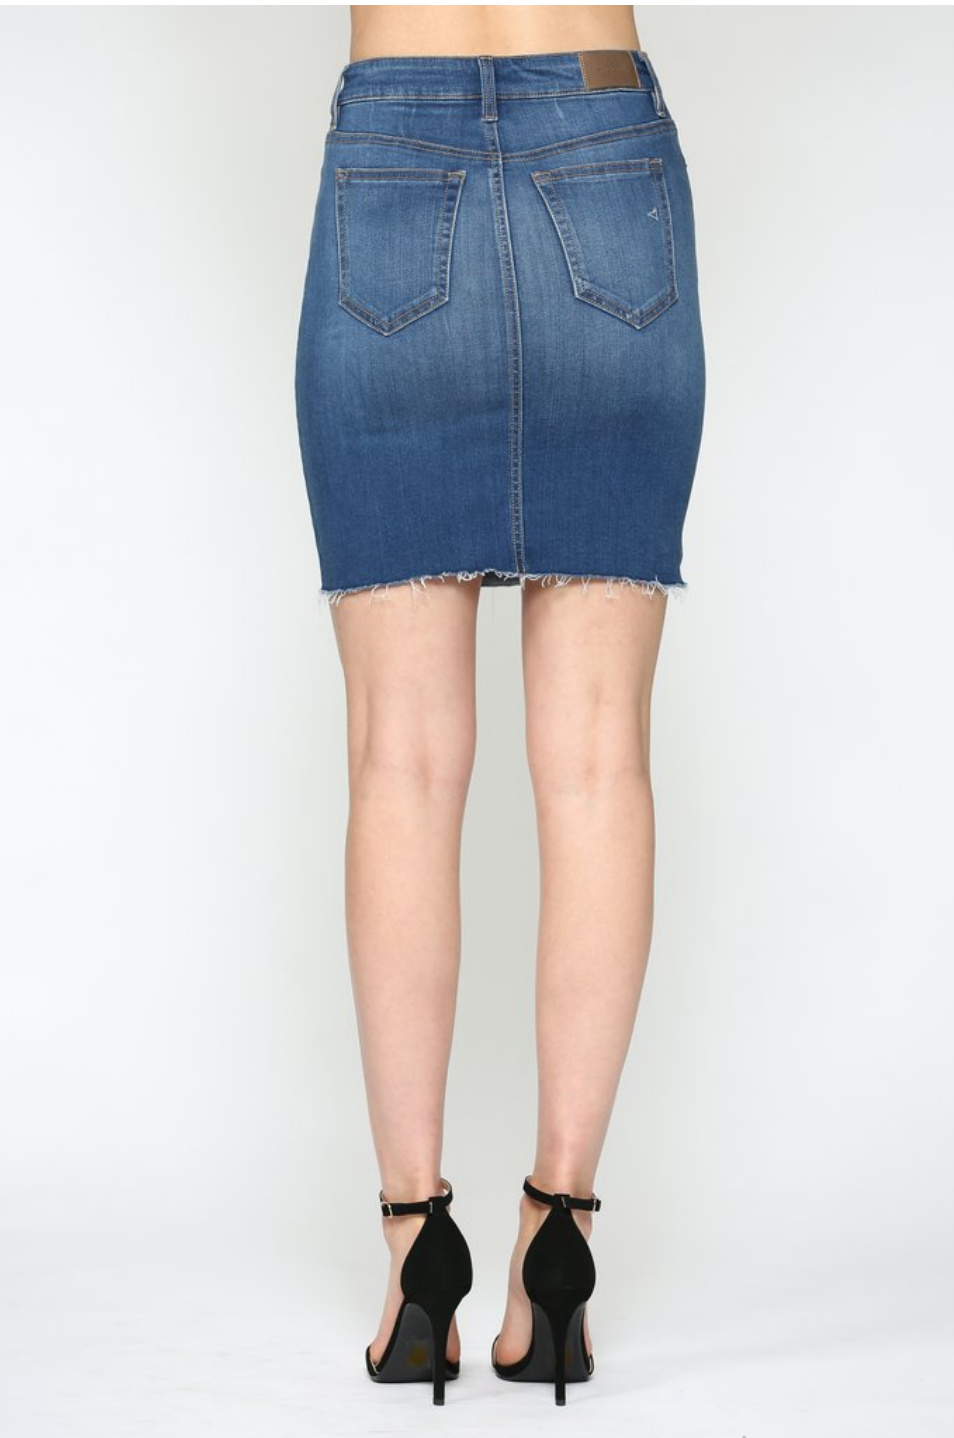 Hidden Jeans Peyton Midi Skirt